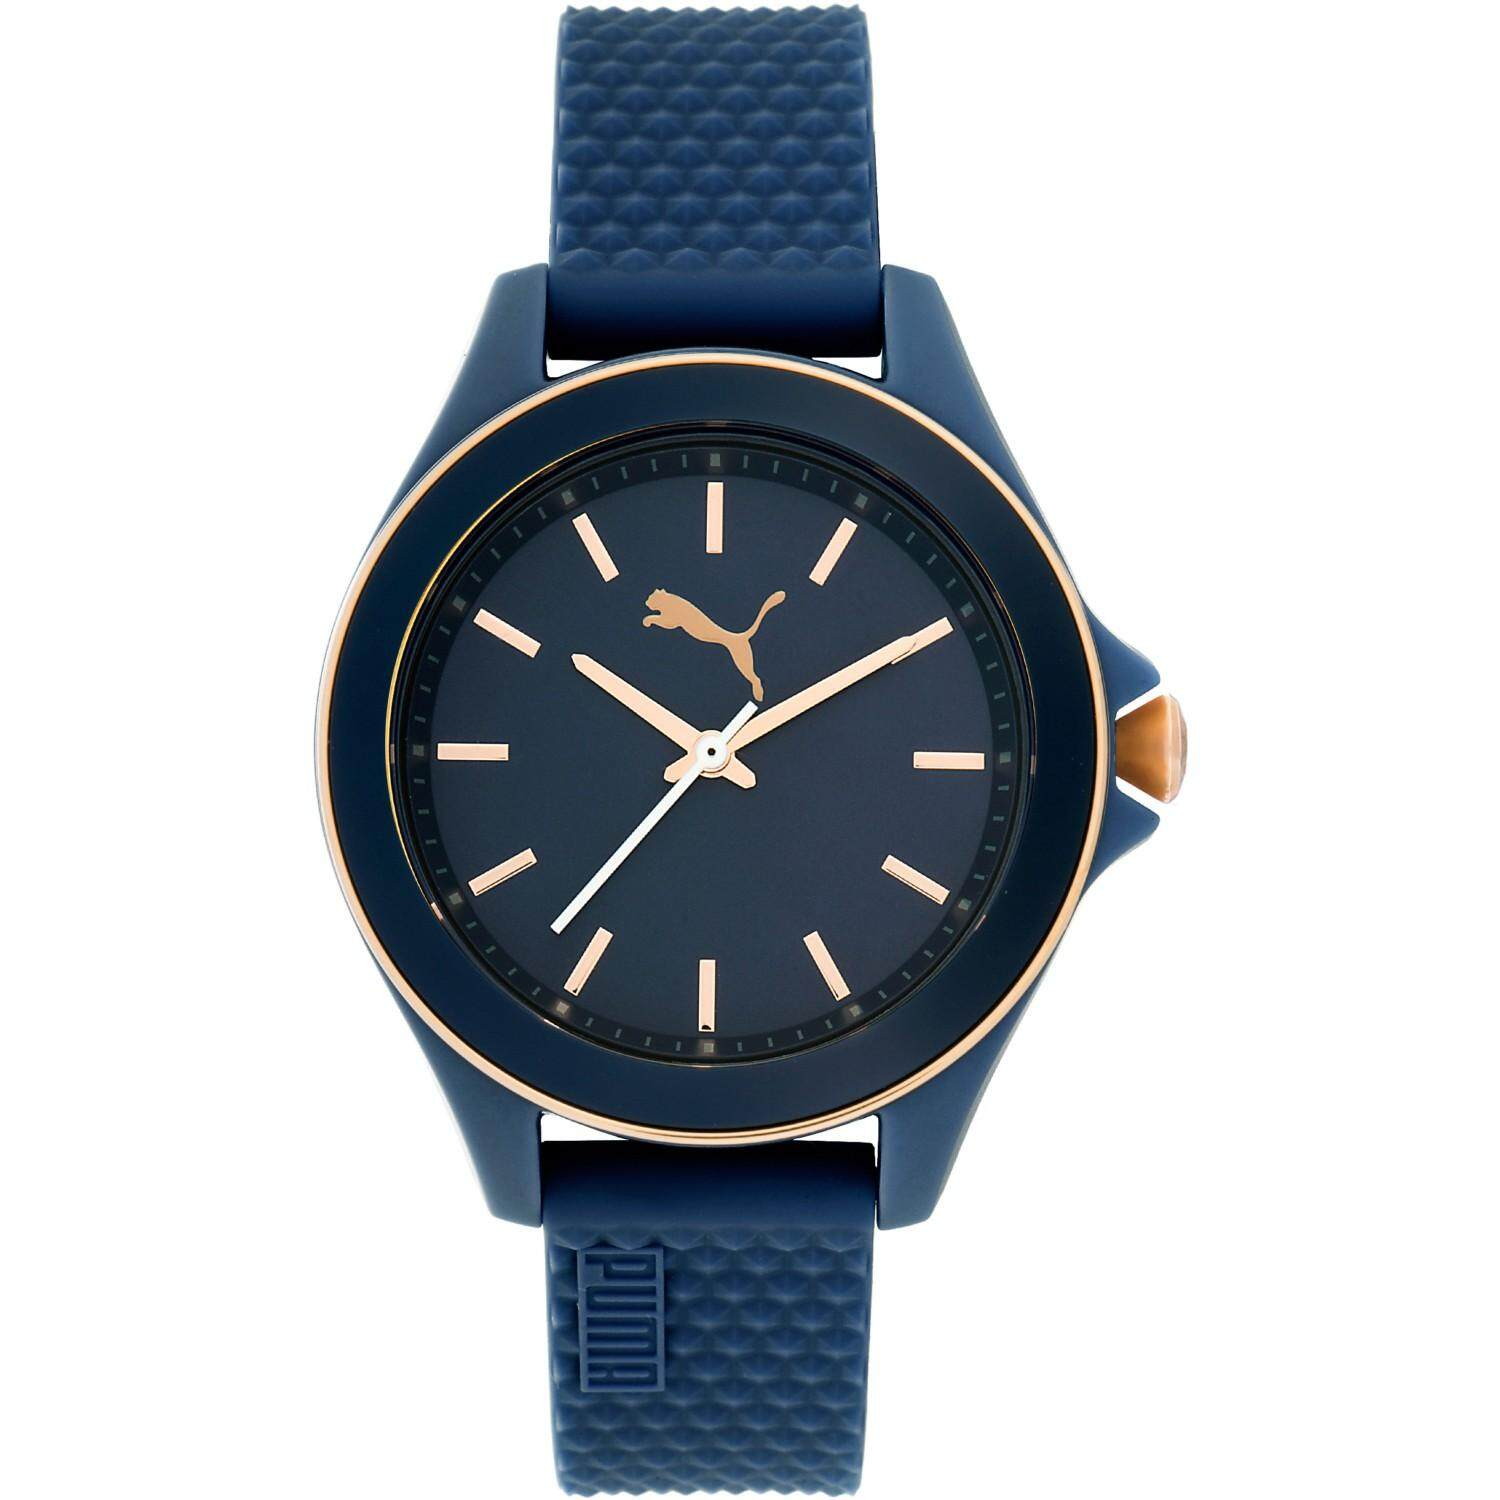 7943361bb3 Authentic PUMA PU104062010 Ladies Navy Blue Dial Rubber Strap Watch